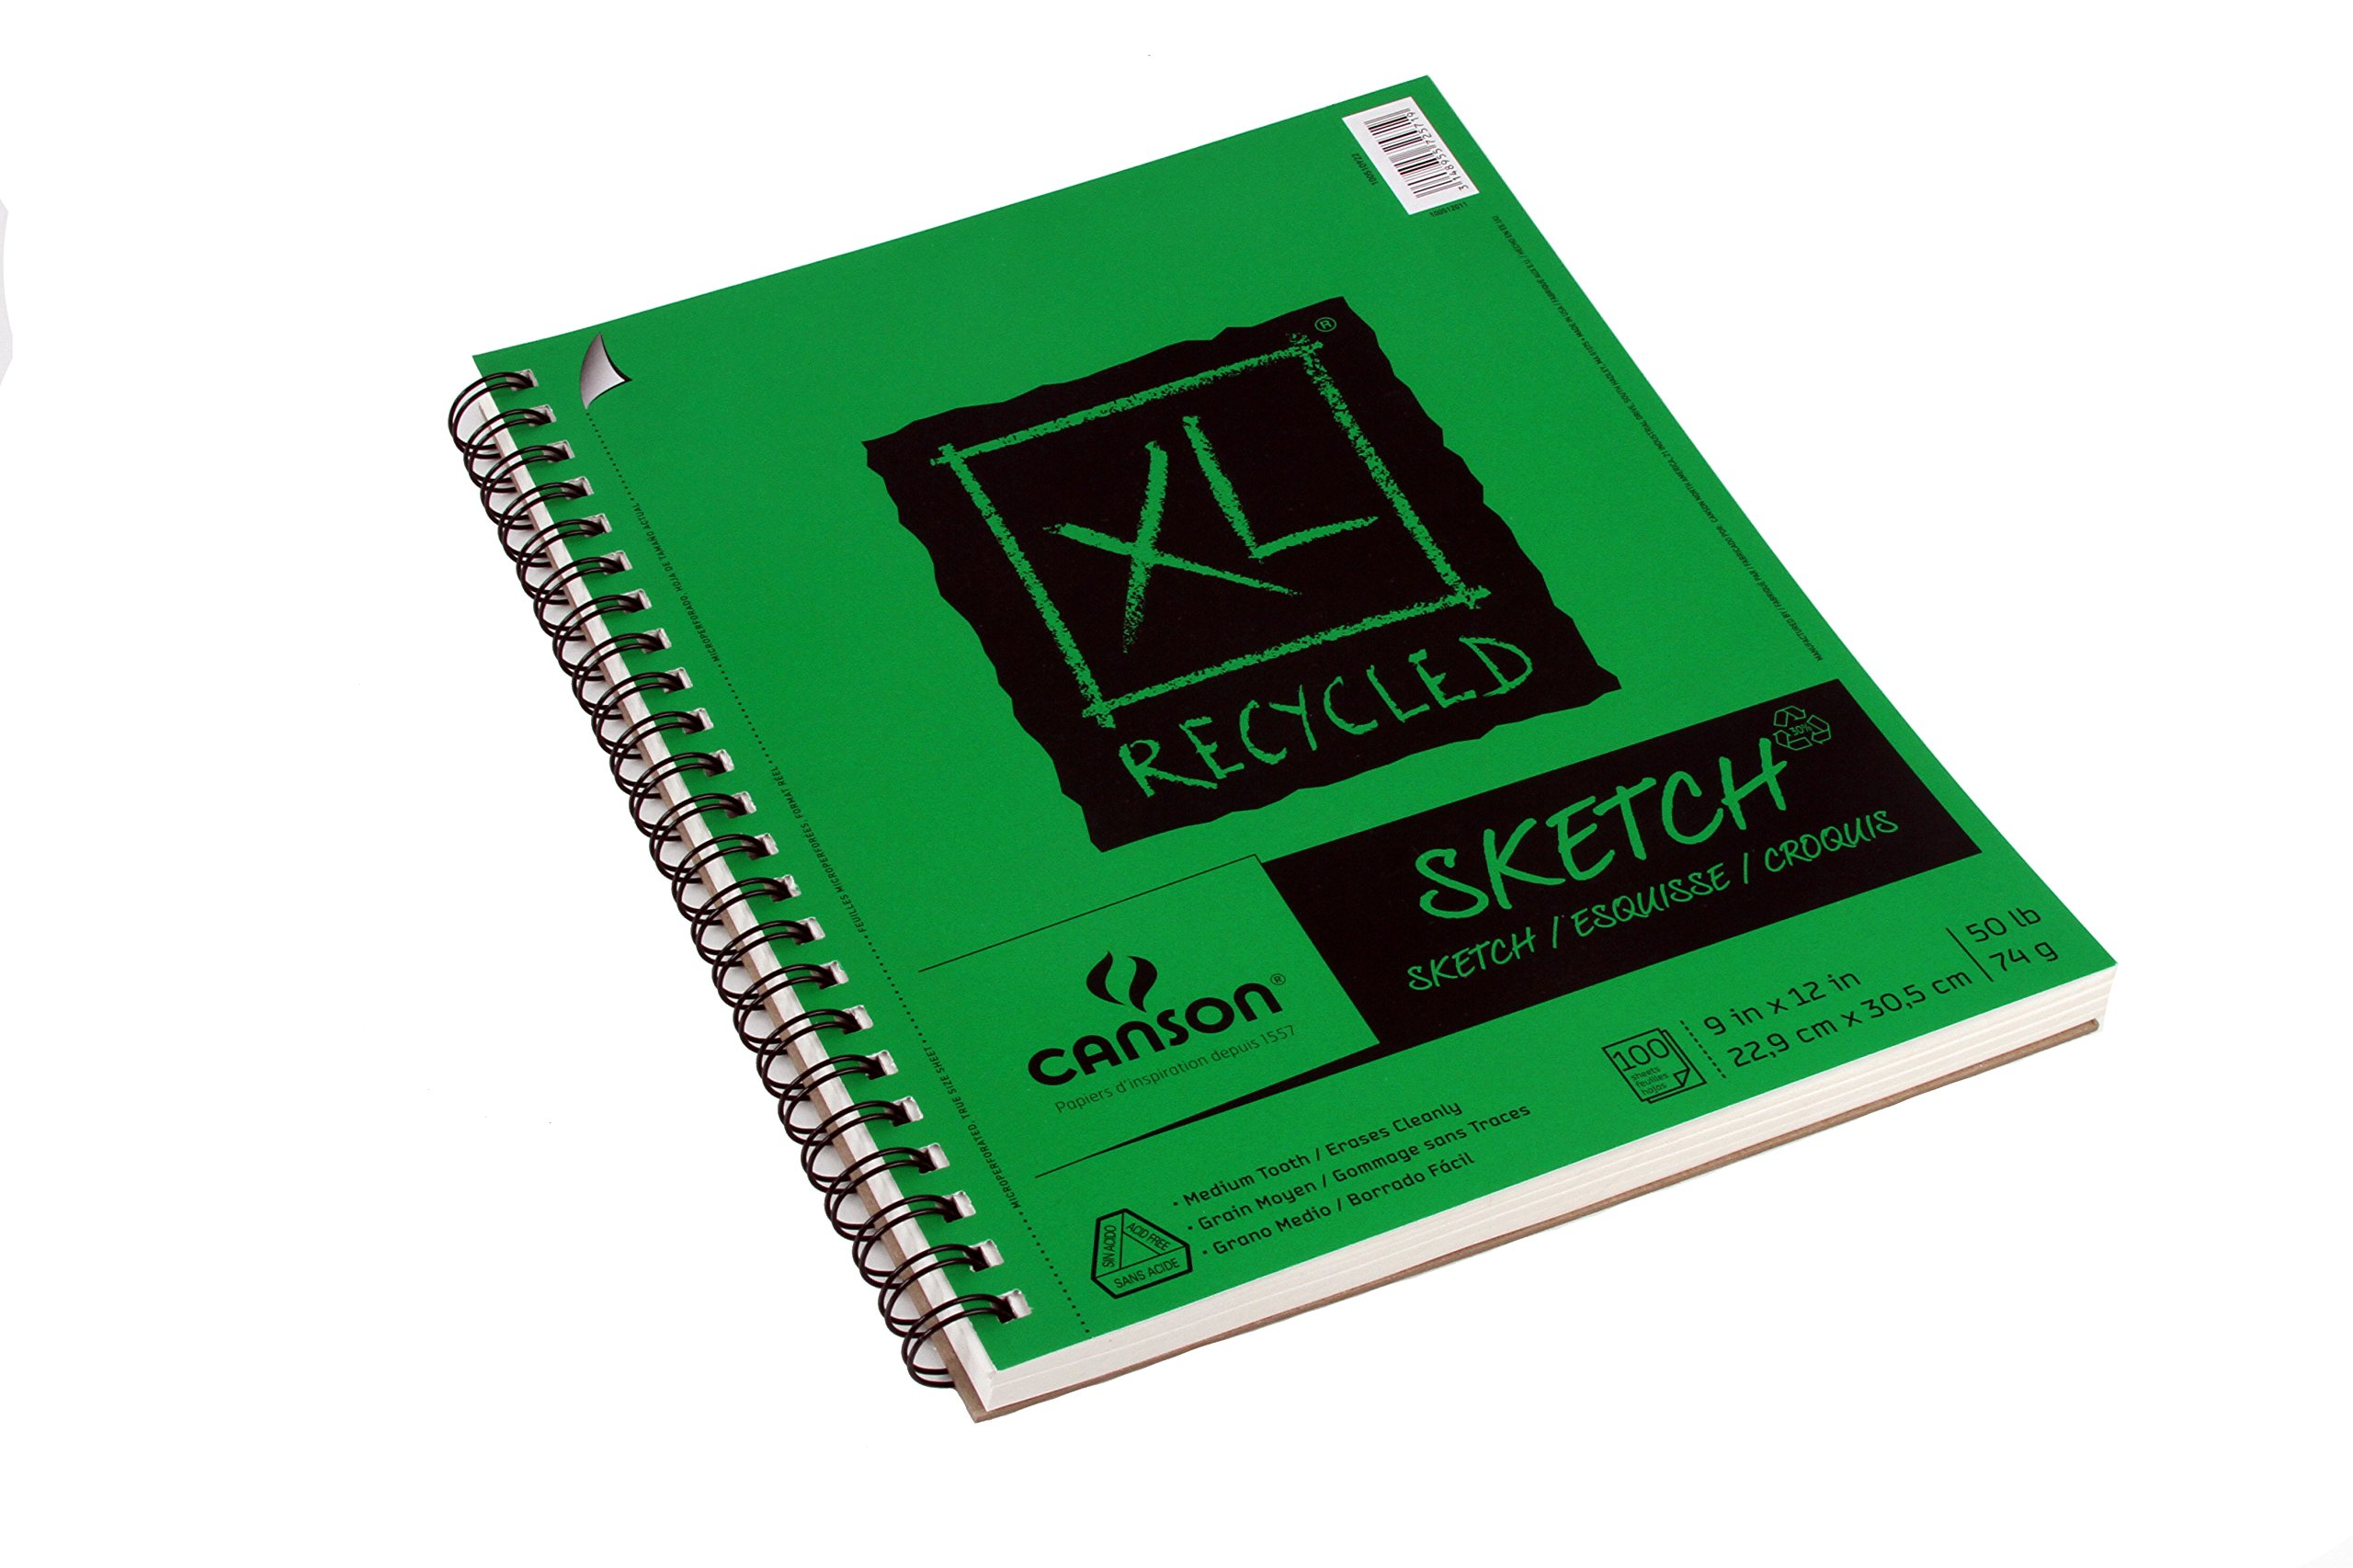 Canson XL Series Recycled Paper Sketch Pad, Side Wire Bound, 50 Pound, 9 x 12 Inch, 100 Sheets by Canson (Image #2)